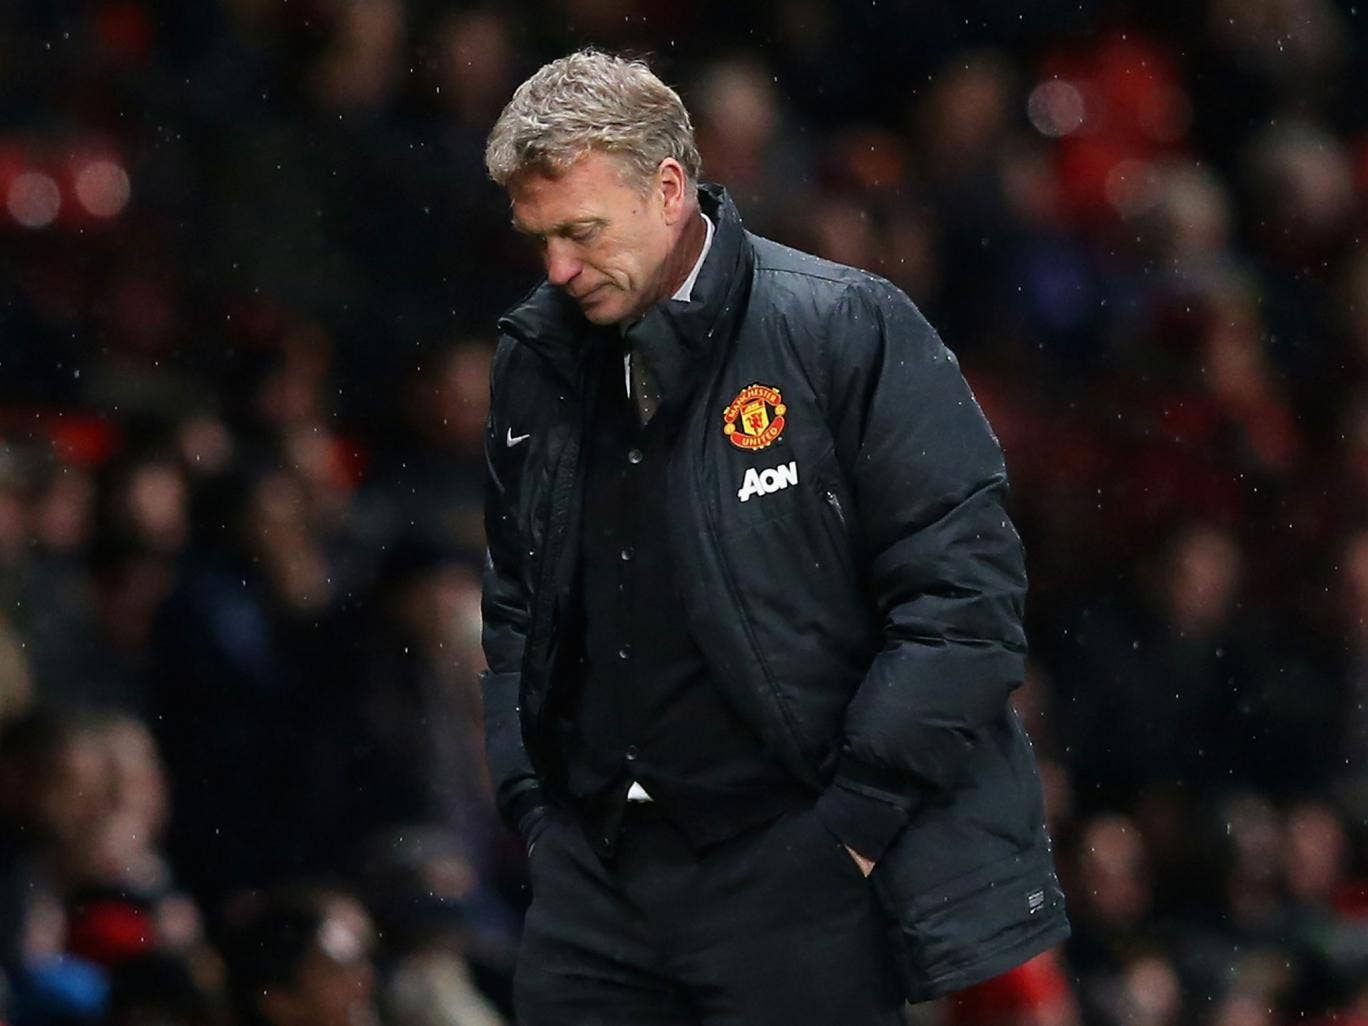 Manchester United manager David Moyes looks on in downbeat fashion during his club's 2-1 defeat by Swansea